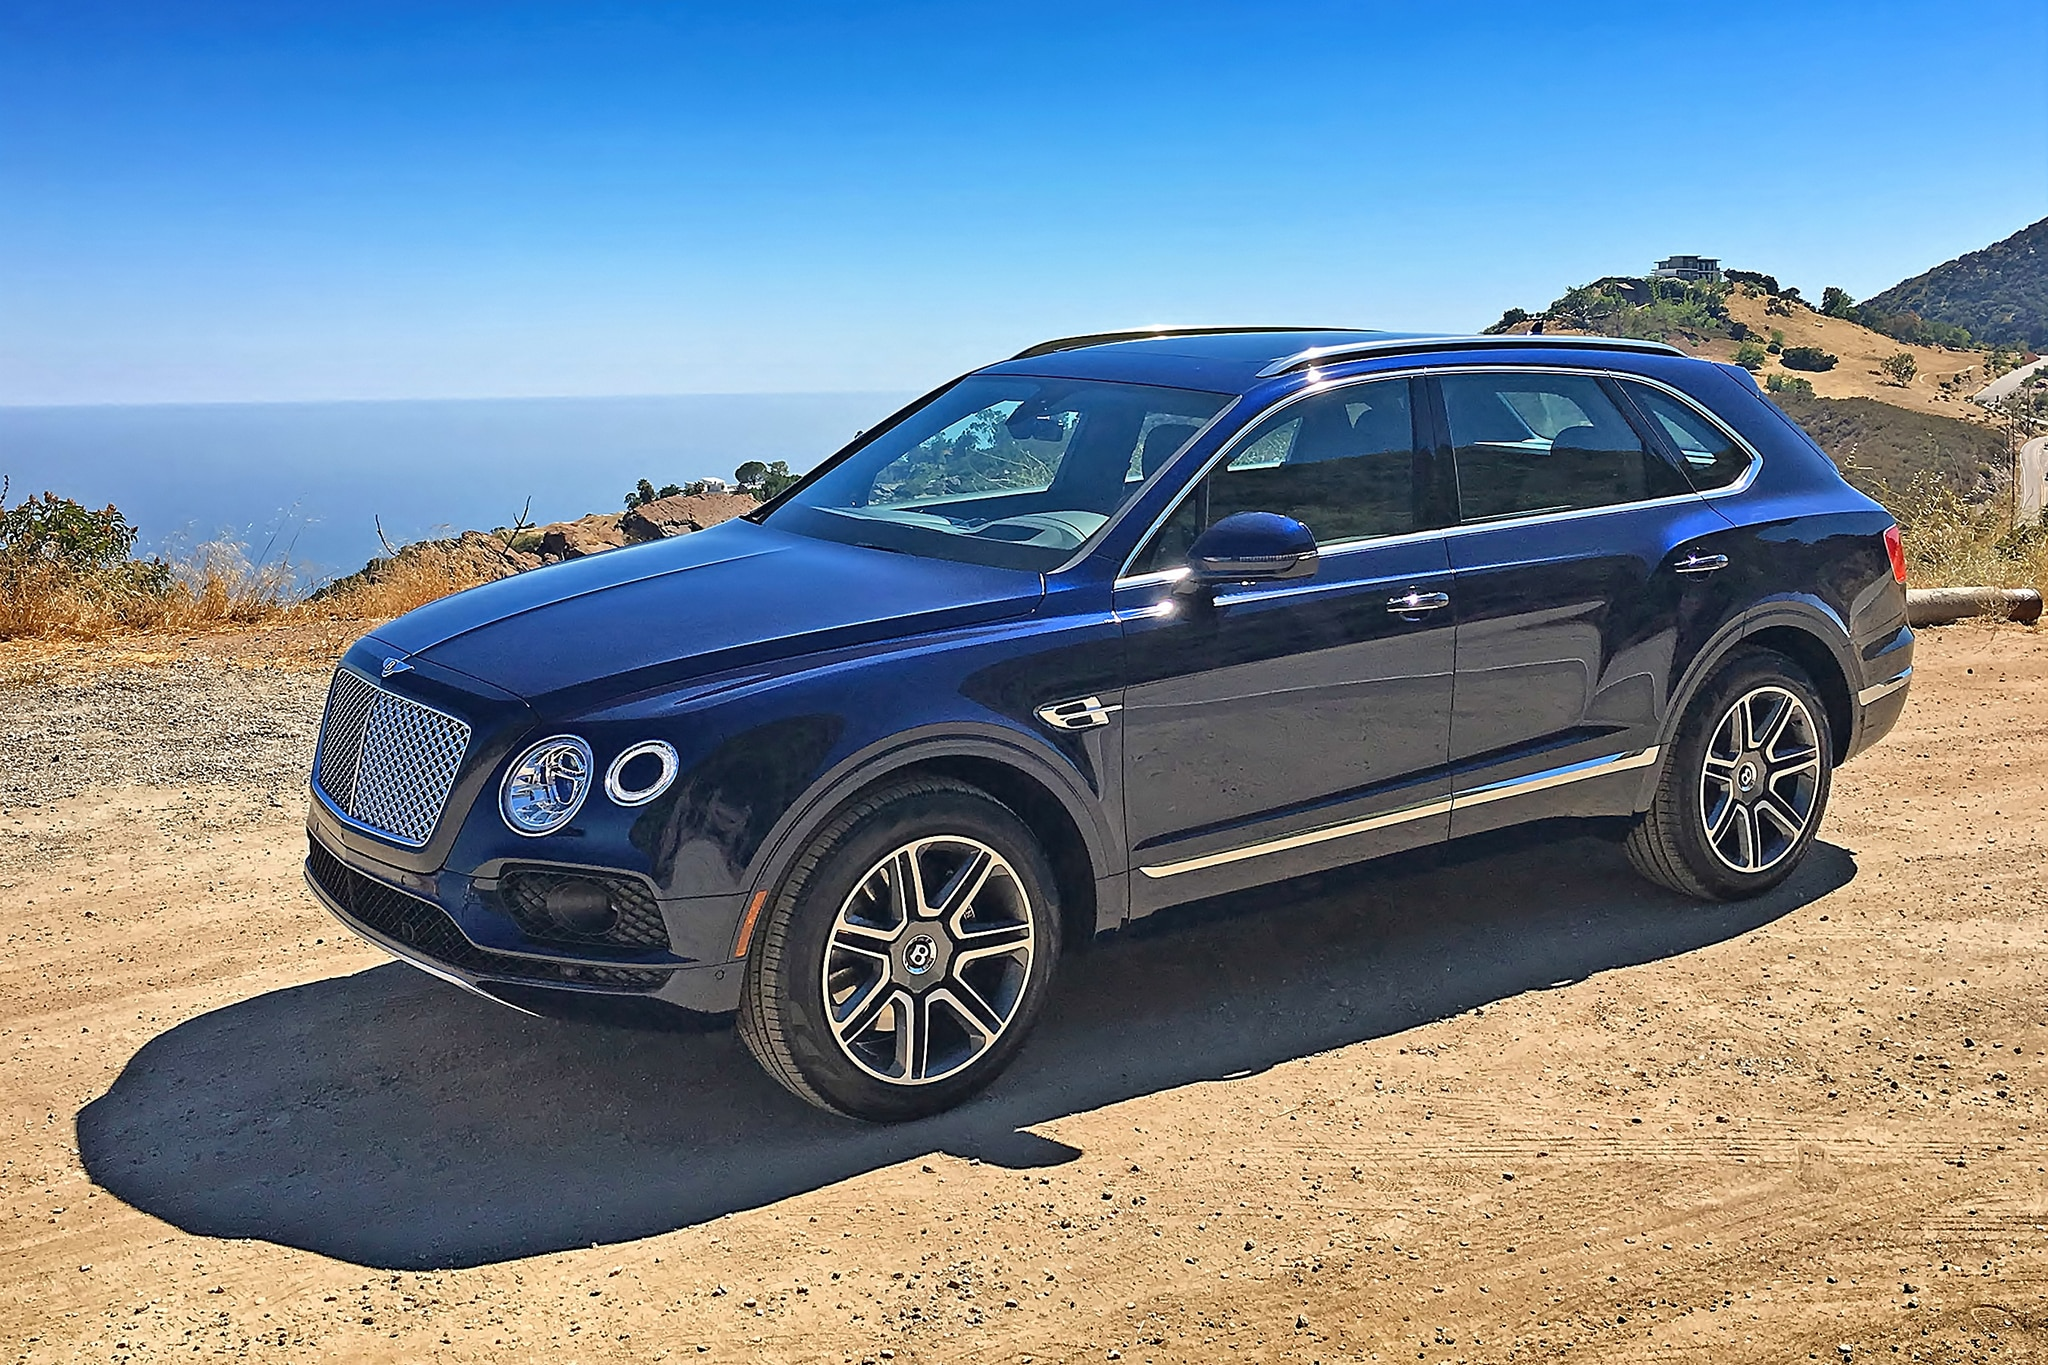 2017 Bentley Bentayga Front Three Quarter 02